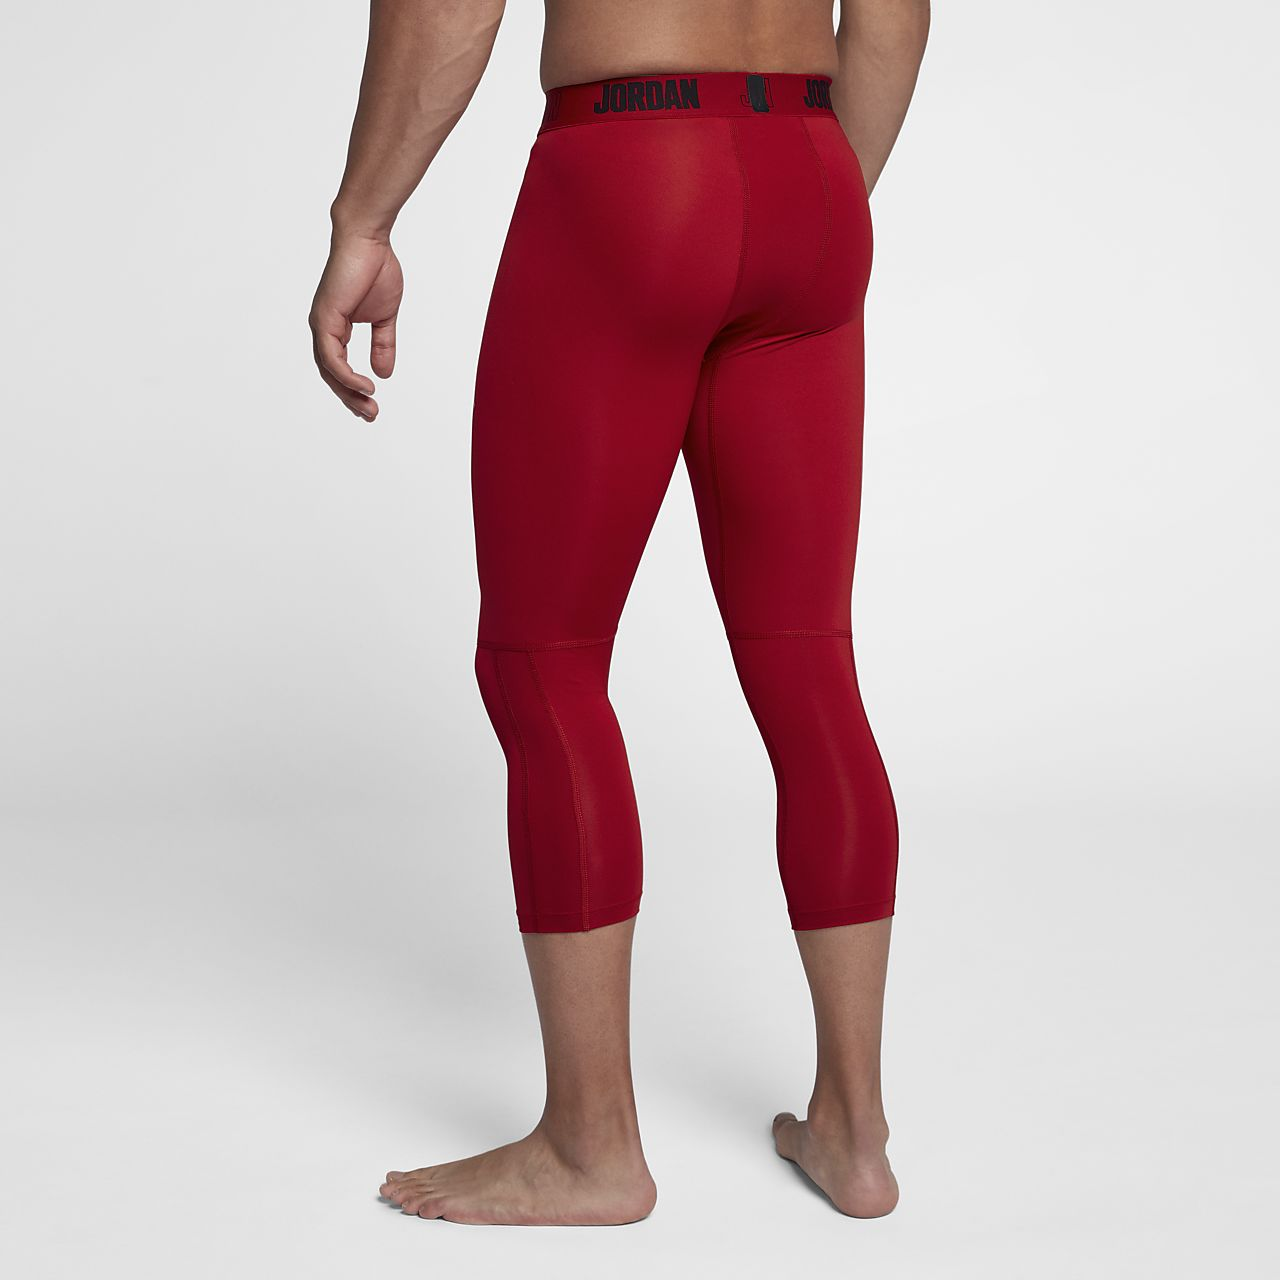 c2f5484adb7 Jordan Dri-FIT 23 Alpha Men's 3/4 Training Tights. Nike.com